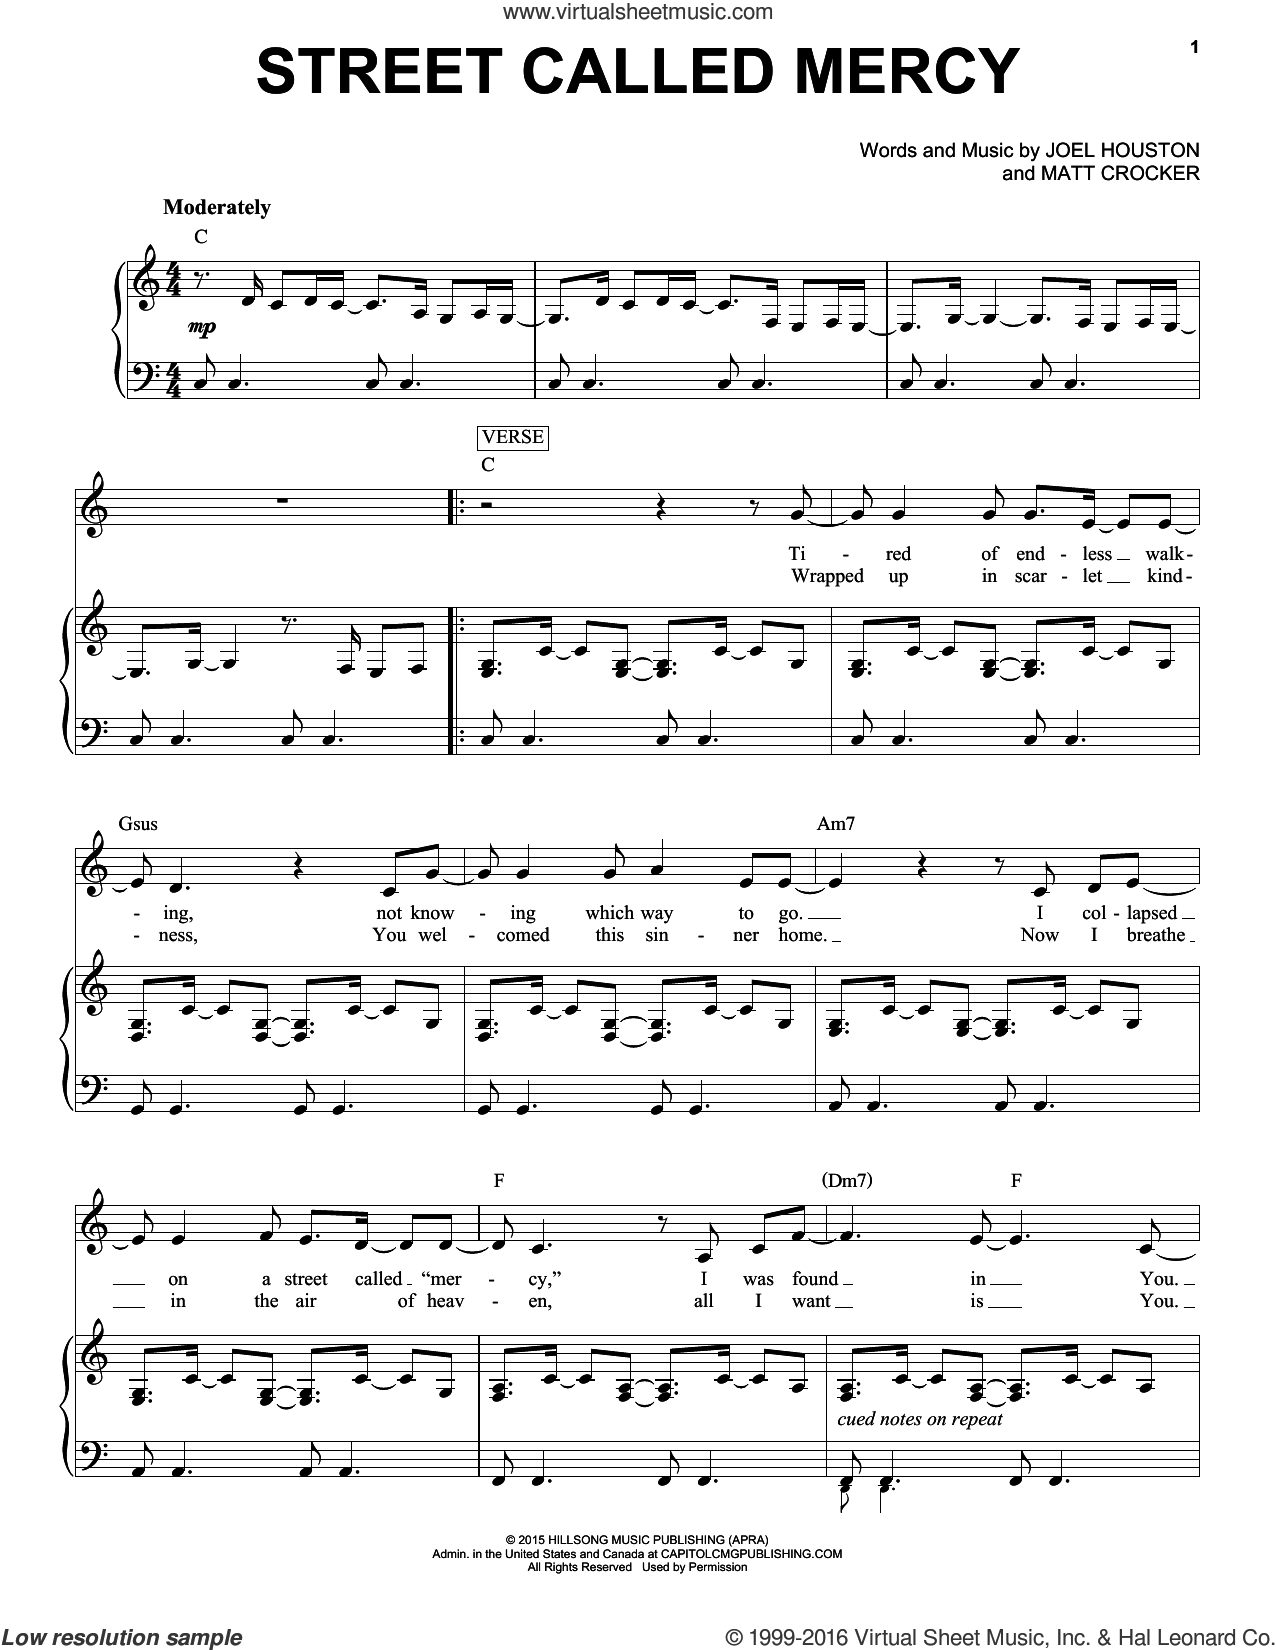 Street Called Mercy sheet music for voice and piano by Hillsong United, Joel Houston and Matt Crocker, intermediate